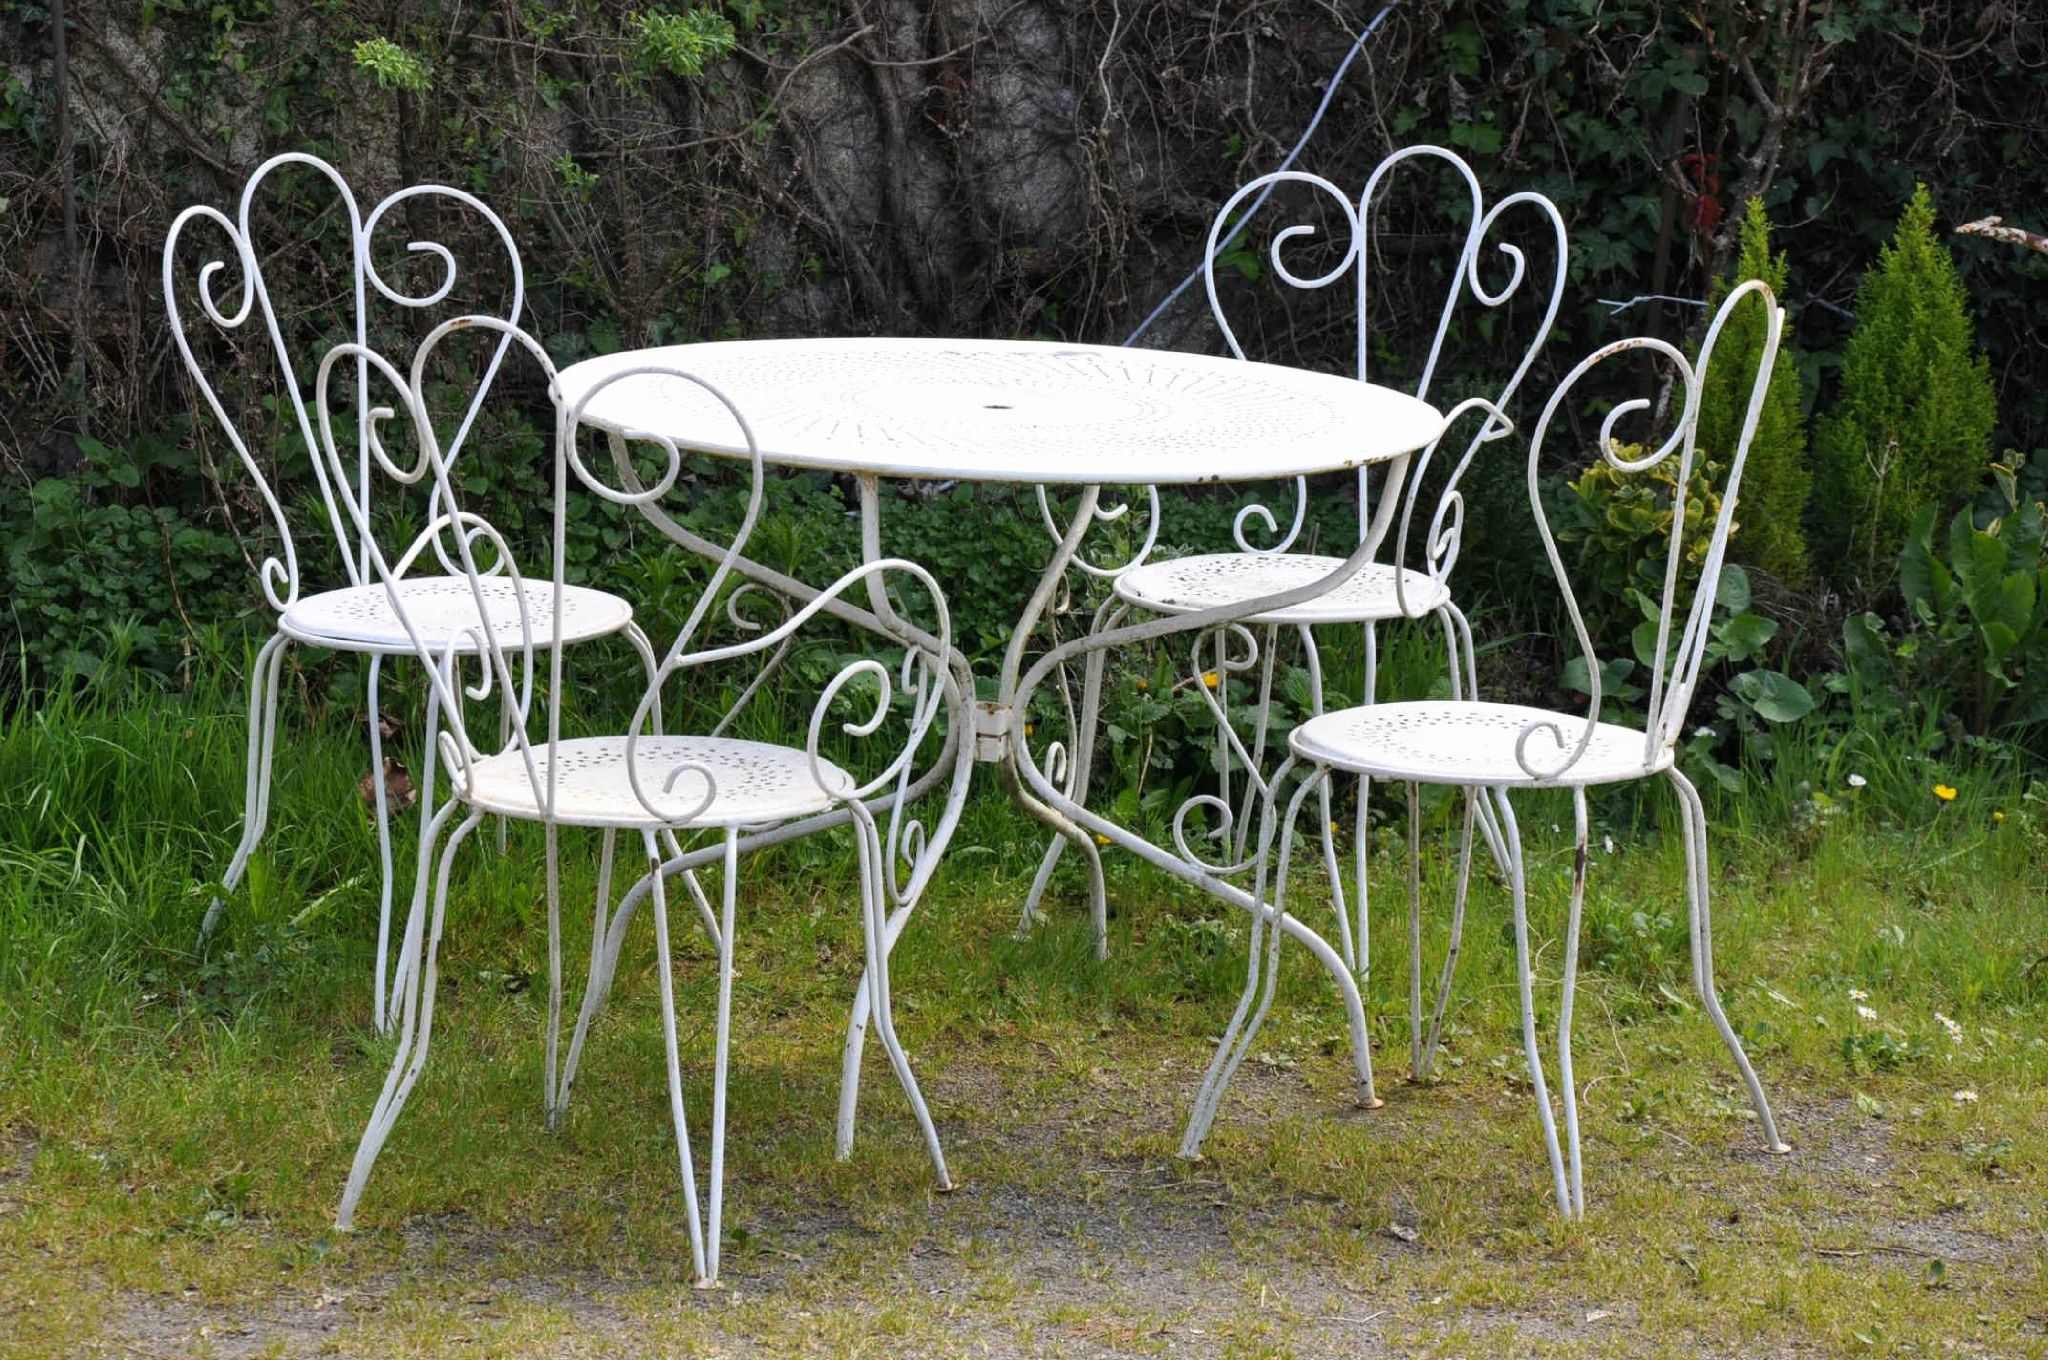 Awesome Palette Plastique Castorama Outdoor Furniture Sets Outdoor Tables Dining Table